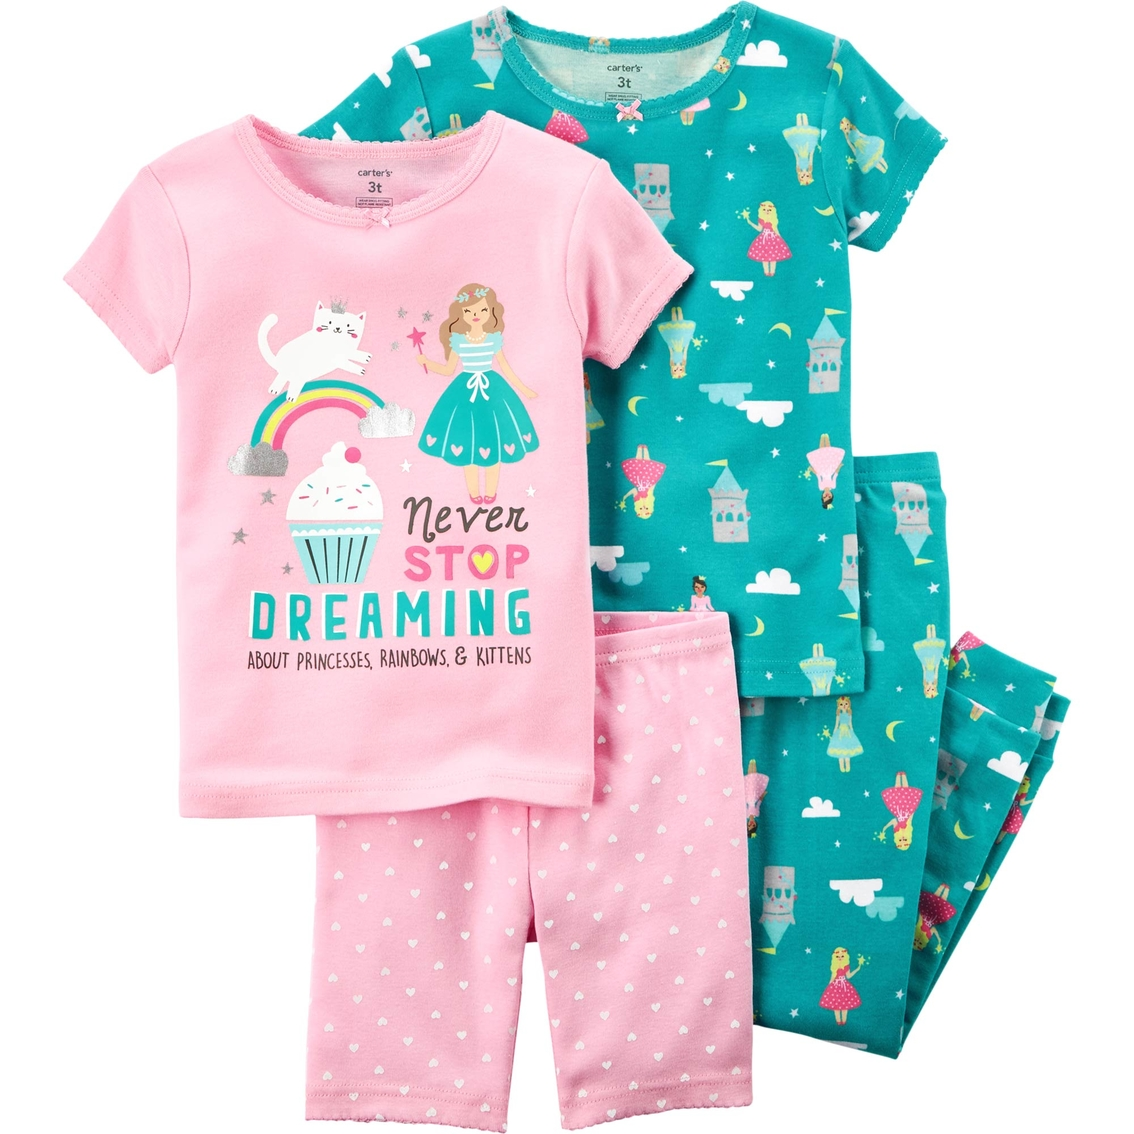 6f6e1fe340 Carter s Little Girls Never Stop Dreaming 4 Pc. Snug Fit Pajama Set ...